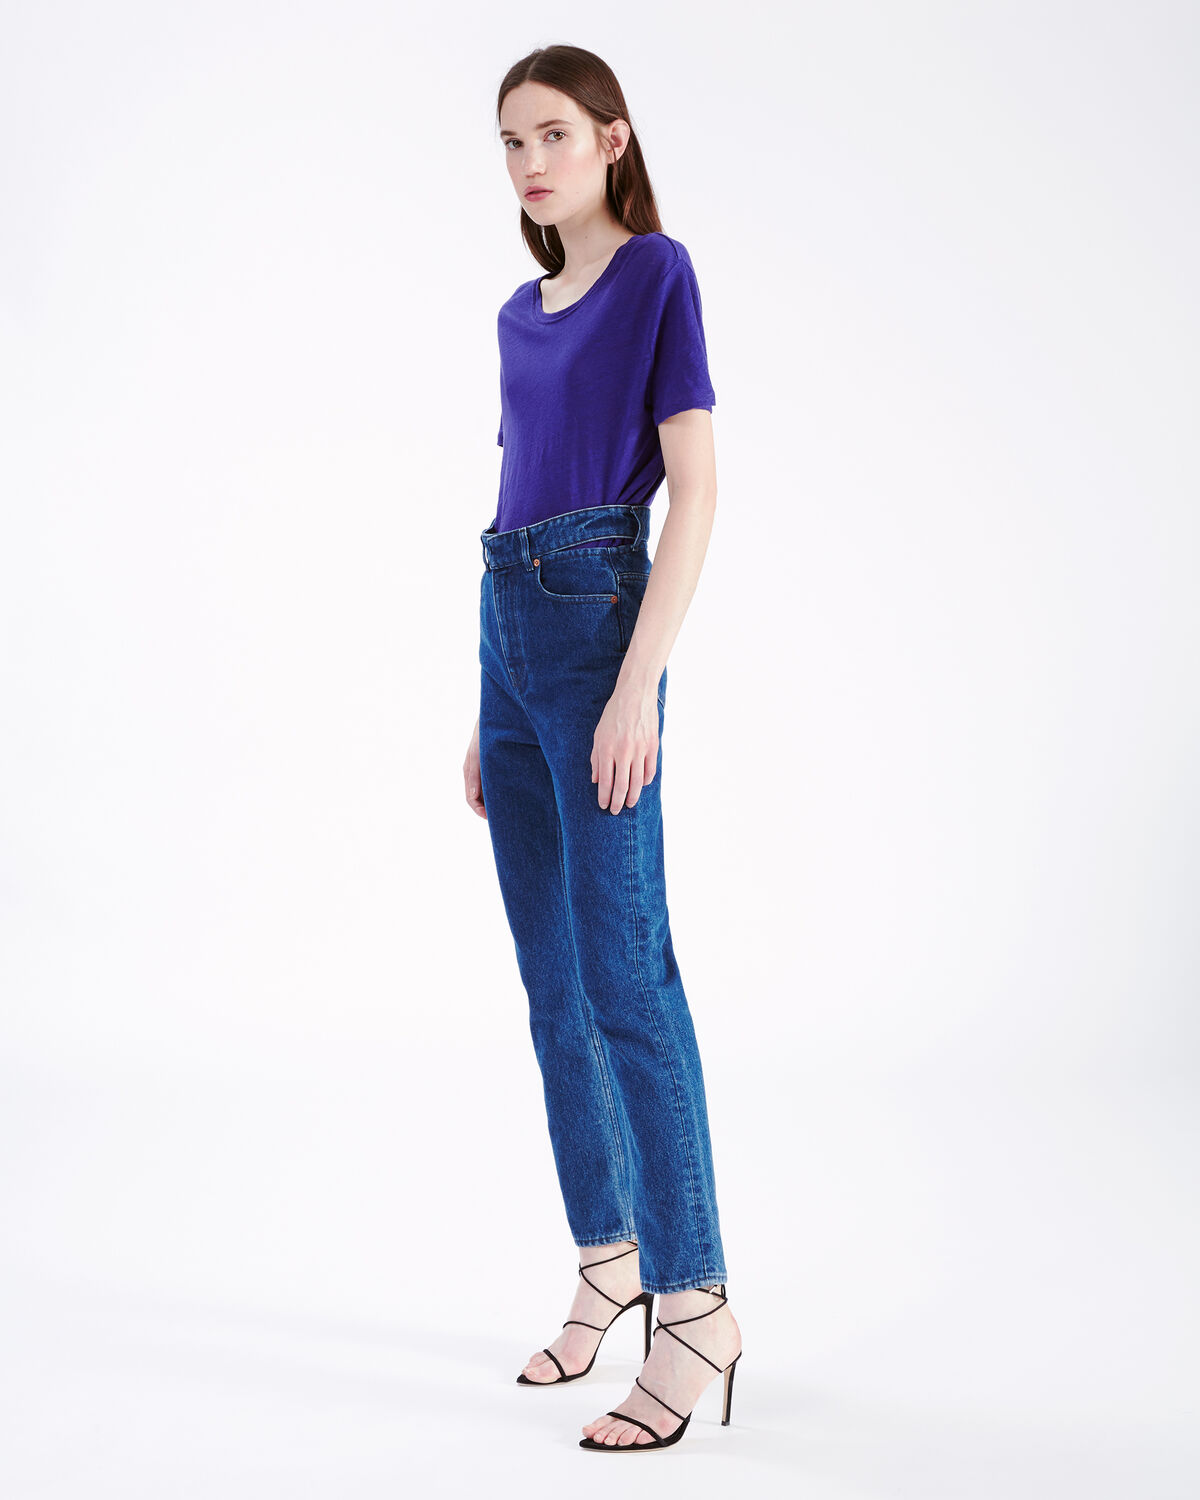 IRO - LUCIANA T-SHIRT PURPLE BLUE